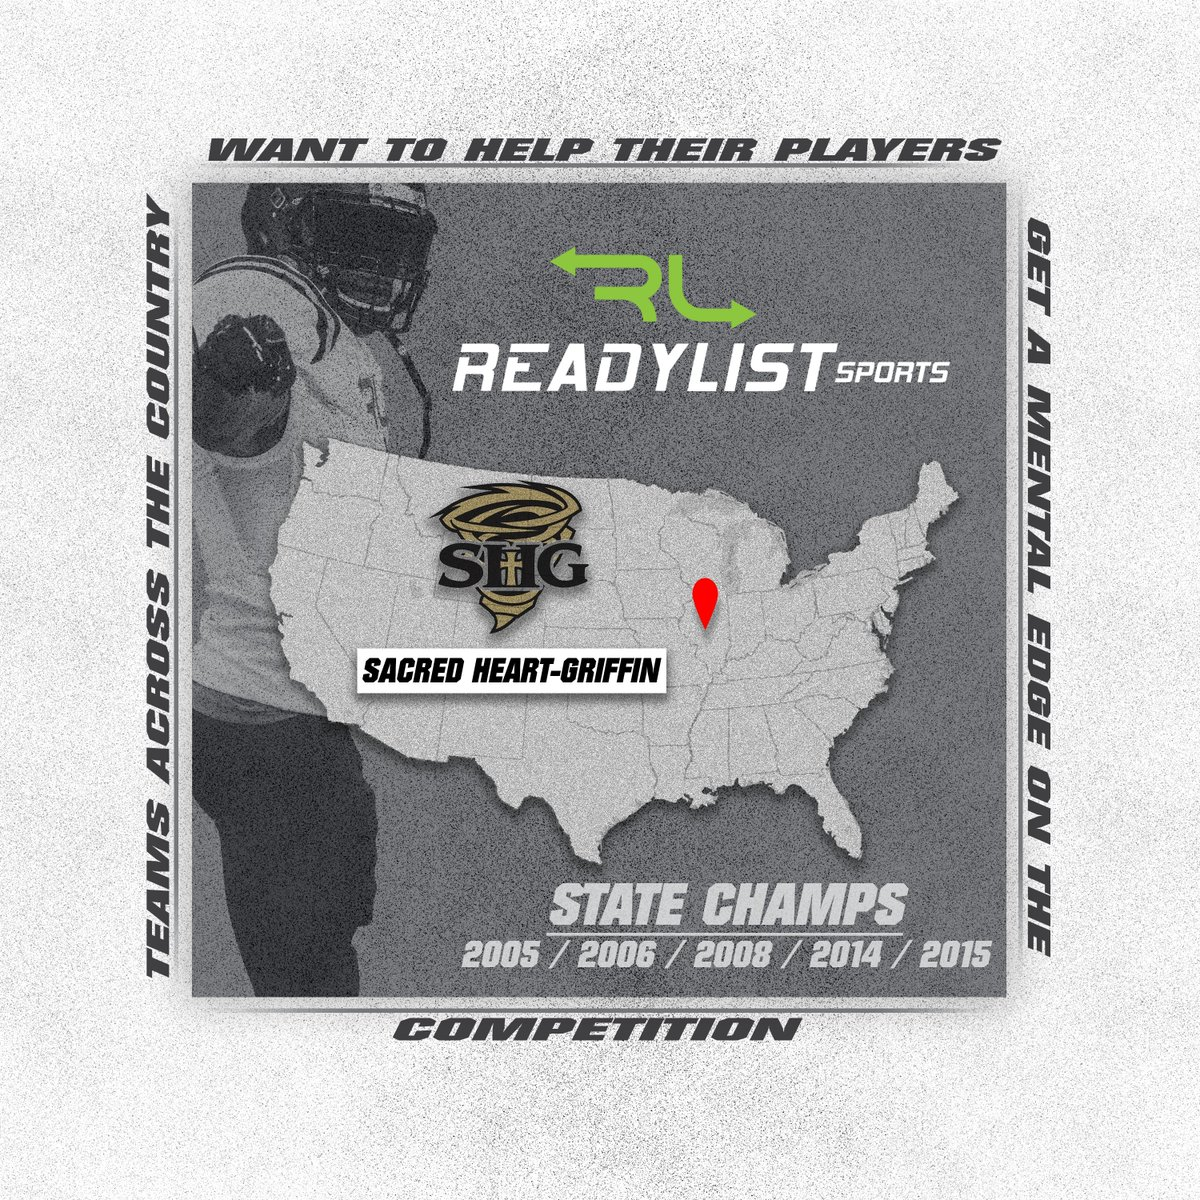 Sacred Heart-Griffin, perennial powerhouse out of Springfield Illinois, is hungry to win another state title. We're excited to welcome the Cyclones to the ReadyList Sports team. @SHGCyclones #Getinyourplaybook #Cyclones #Football https://t.co/yc4npRV2Mz